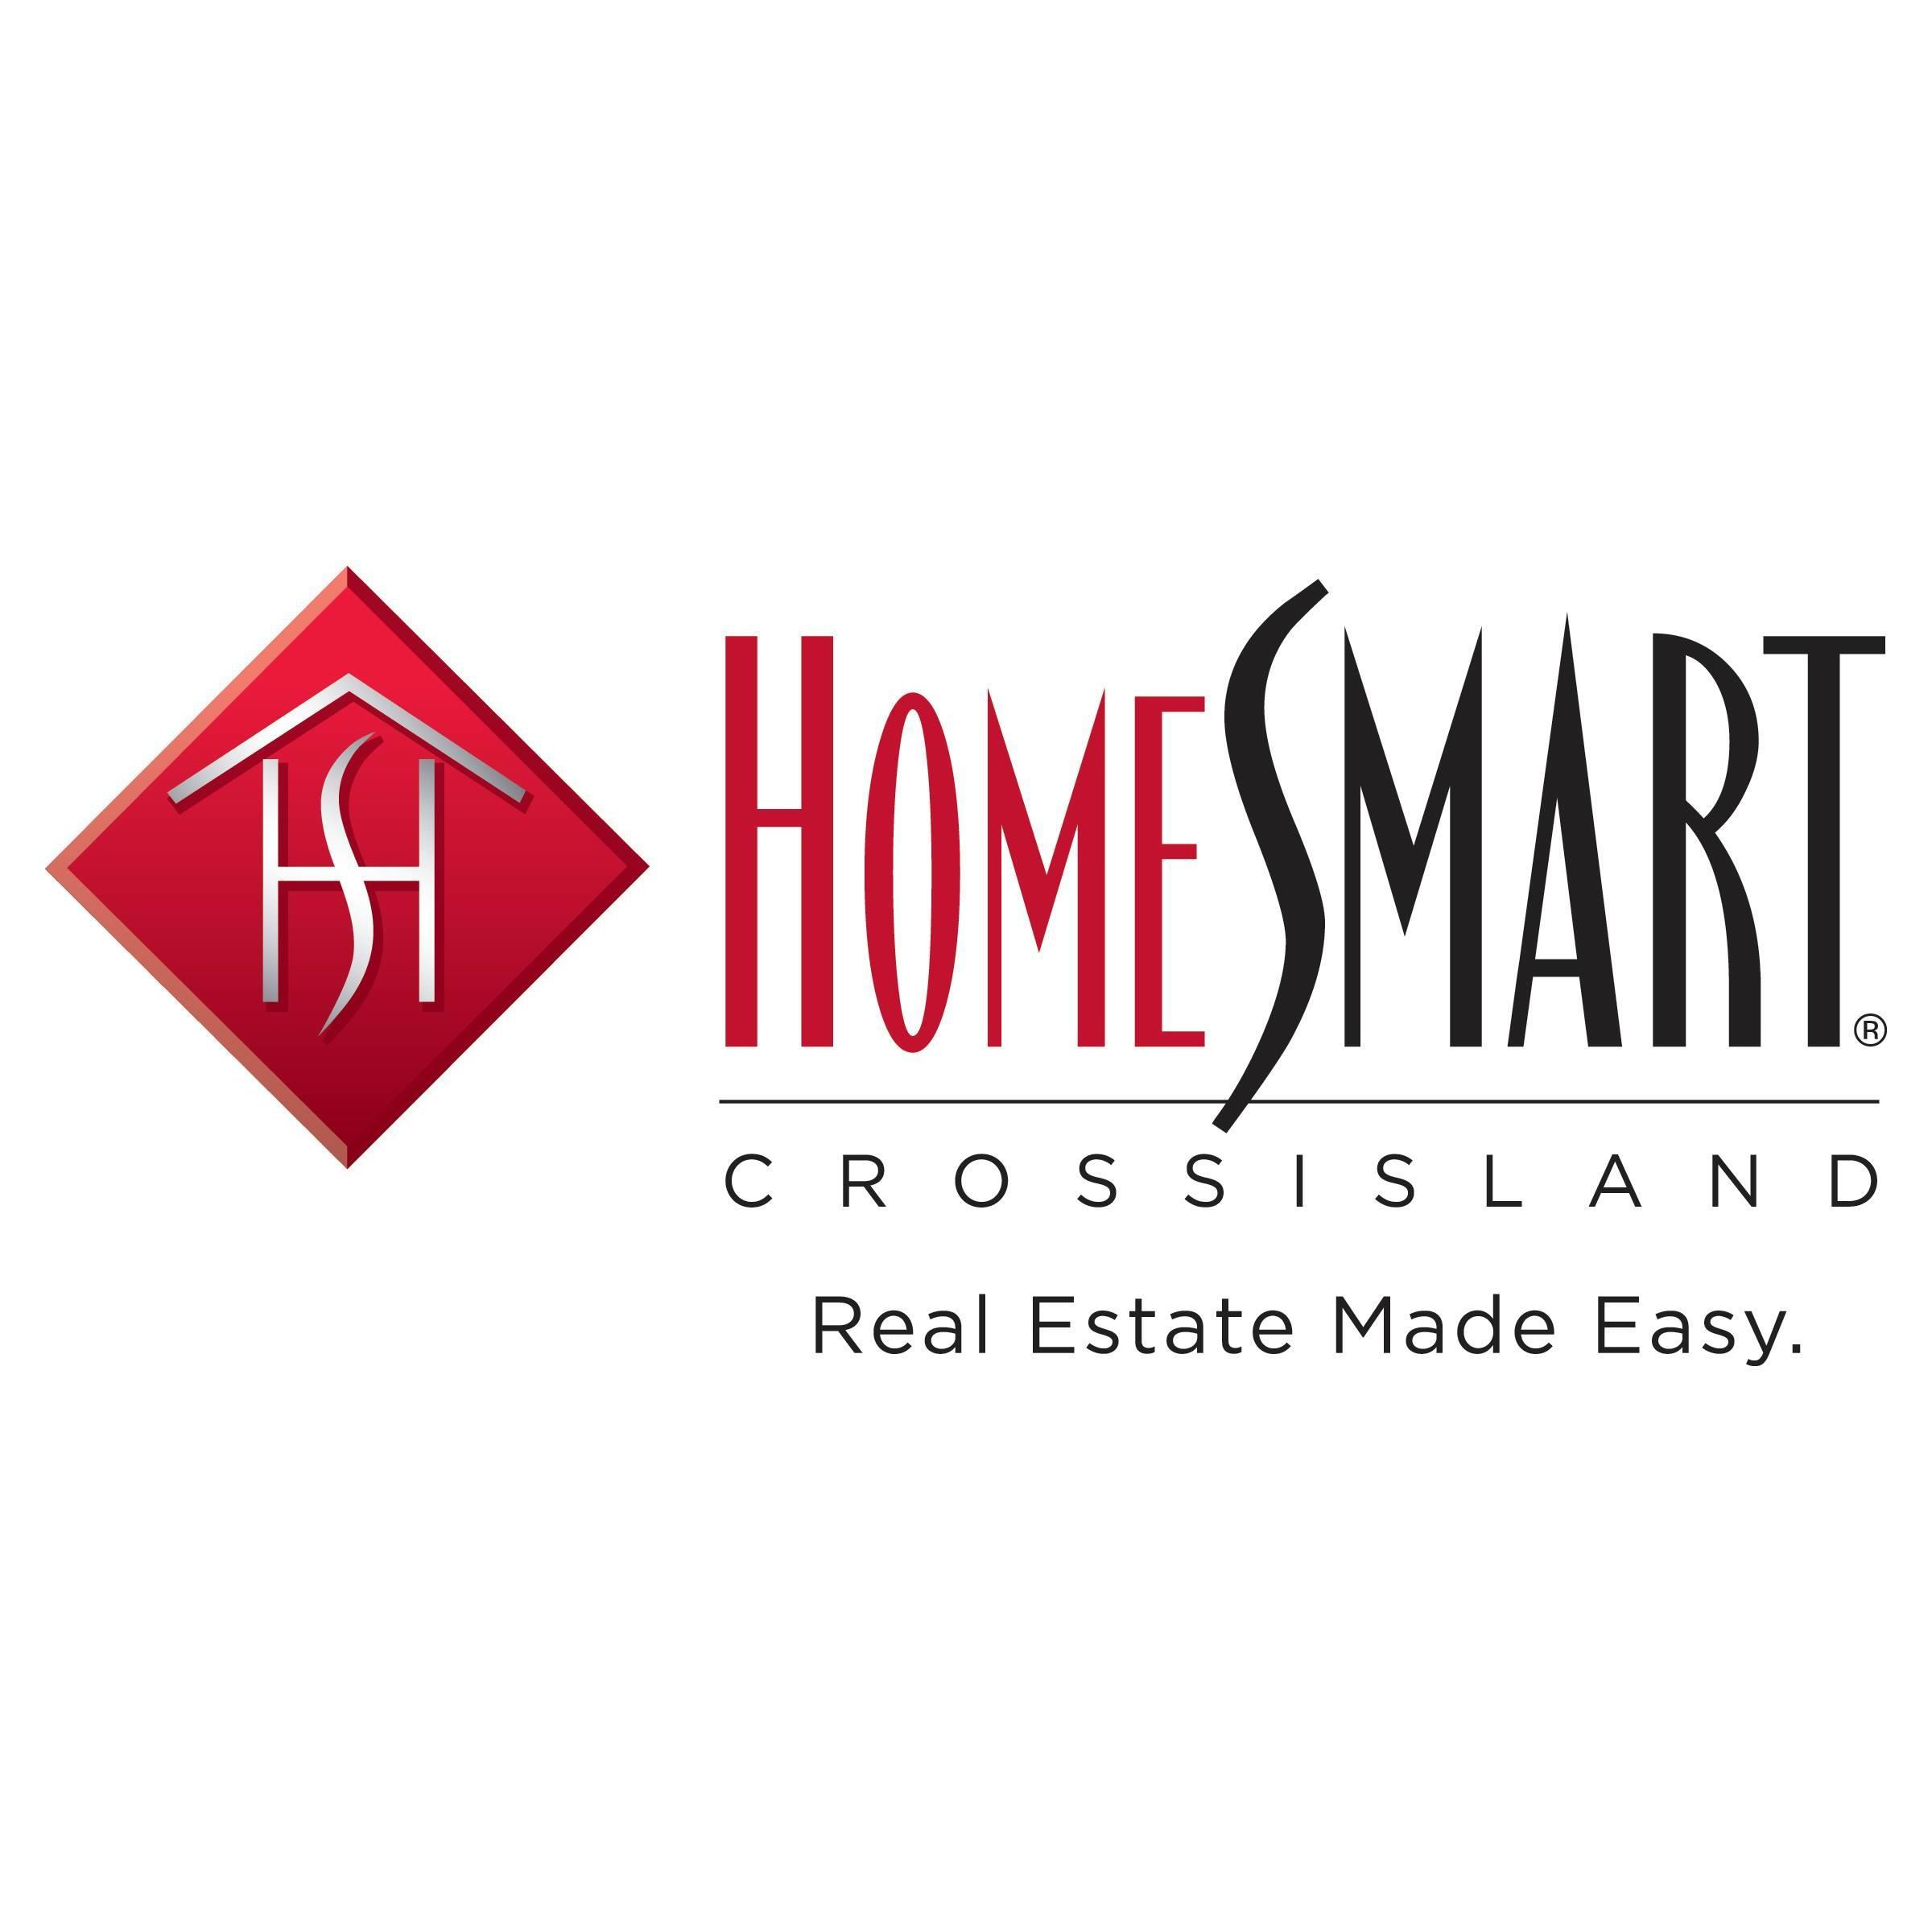 HomeSmart CrossIsland